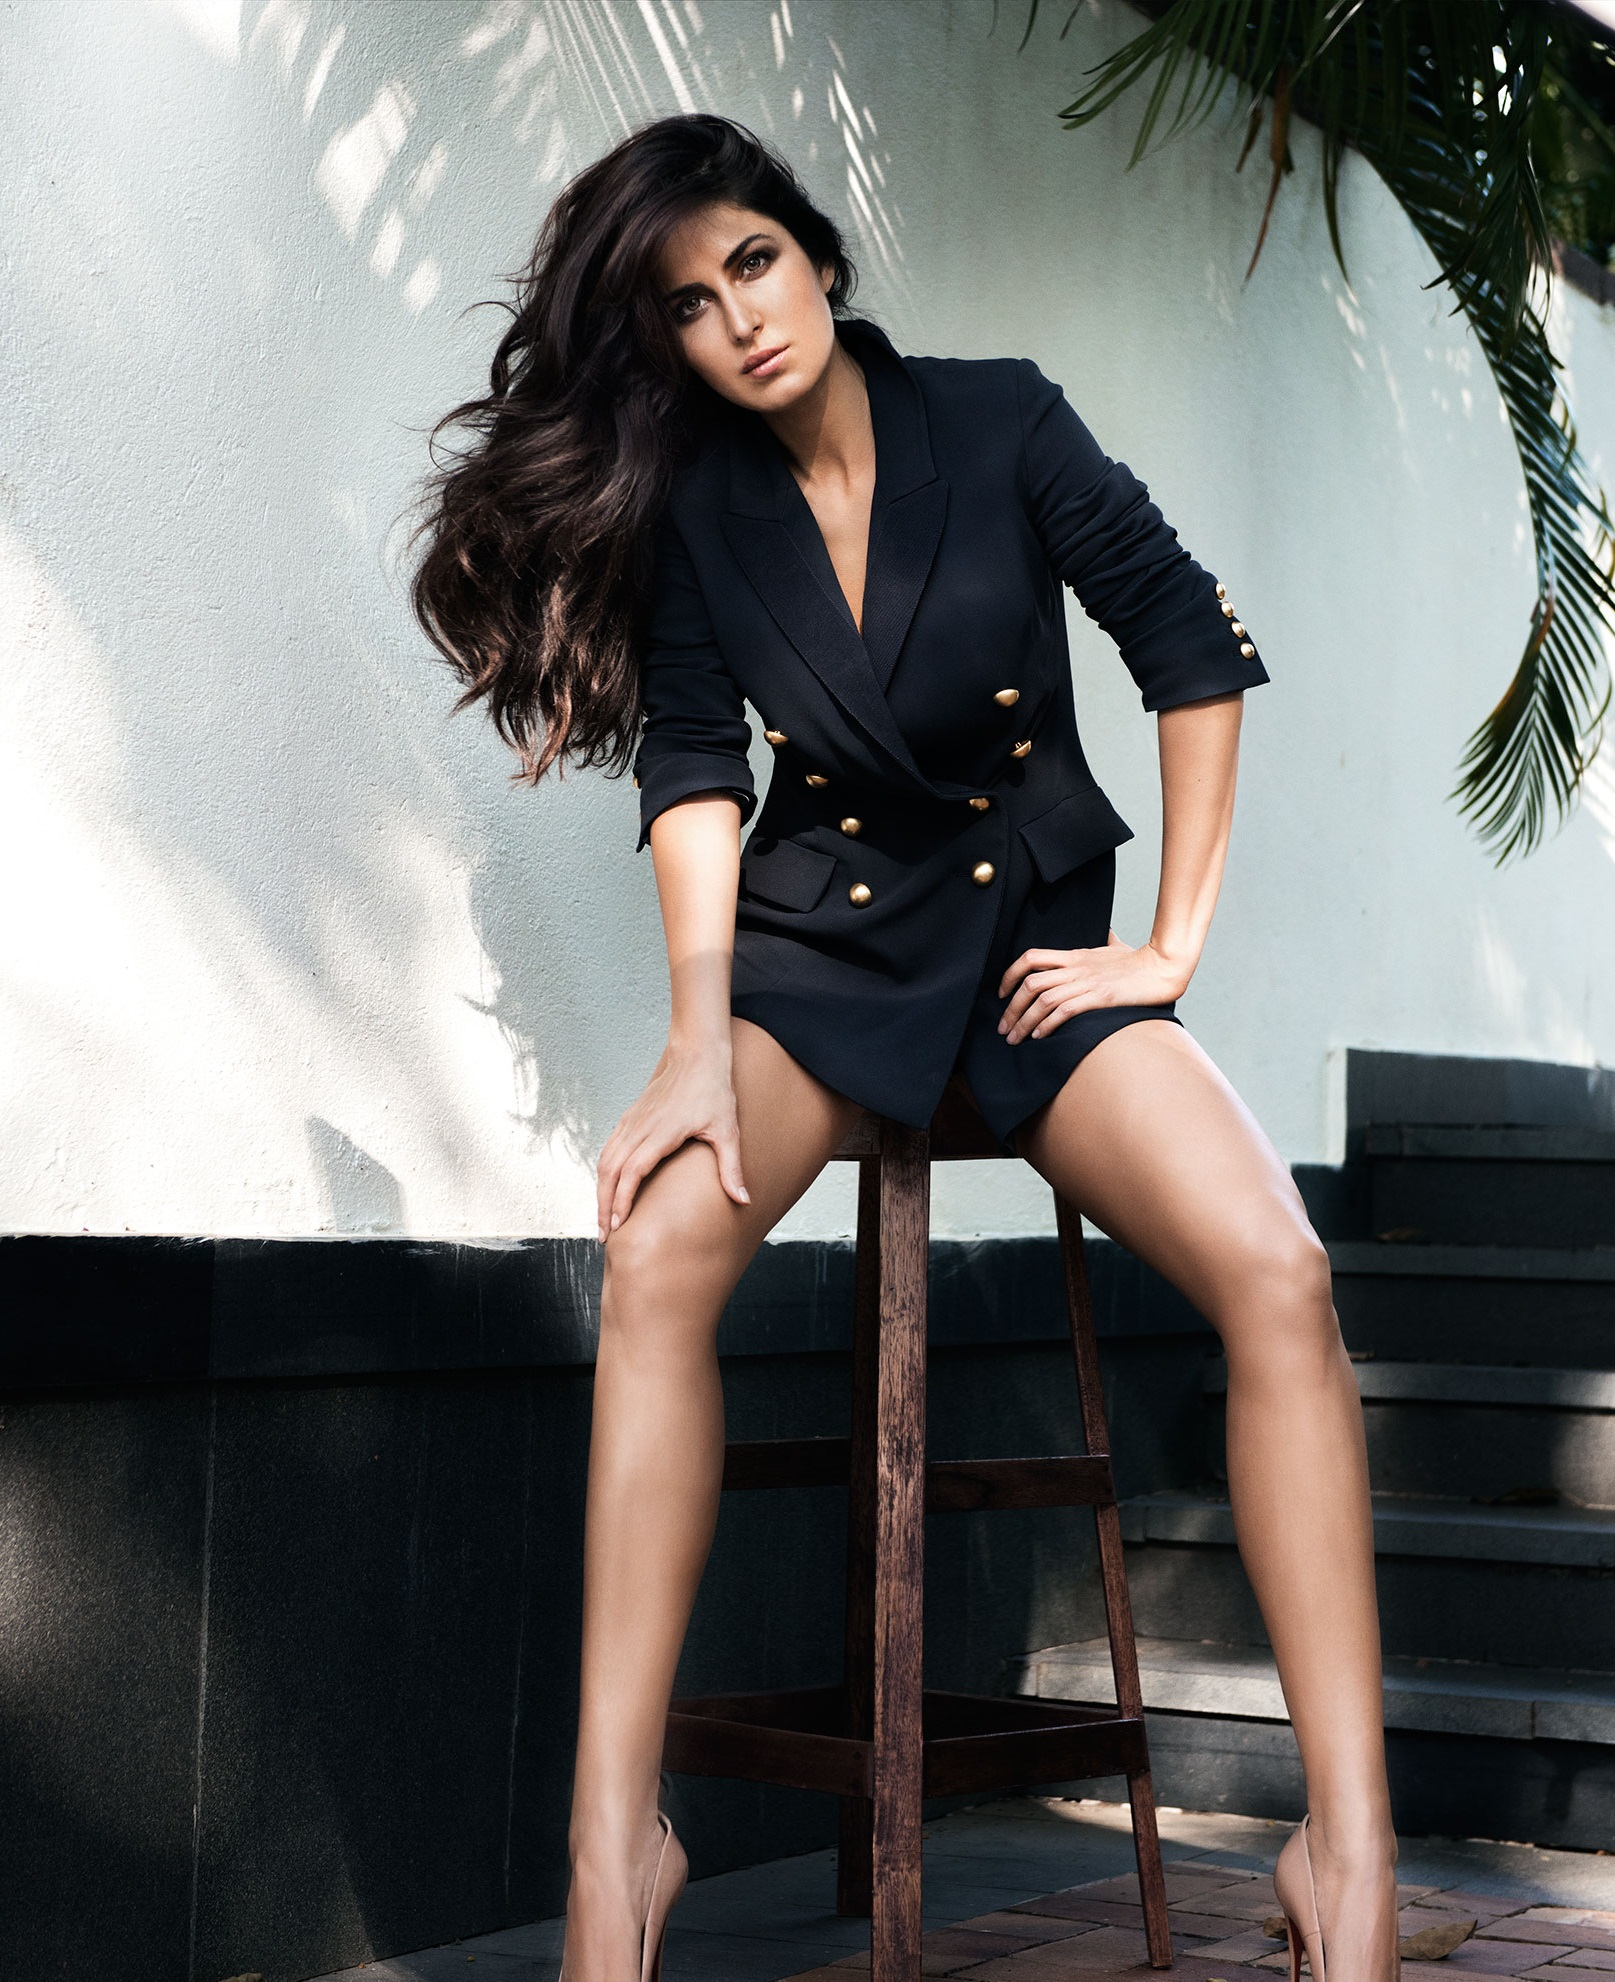 Diamond recommend best of bollywood actress thigh